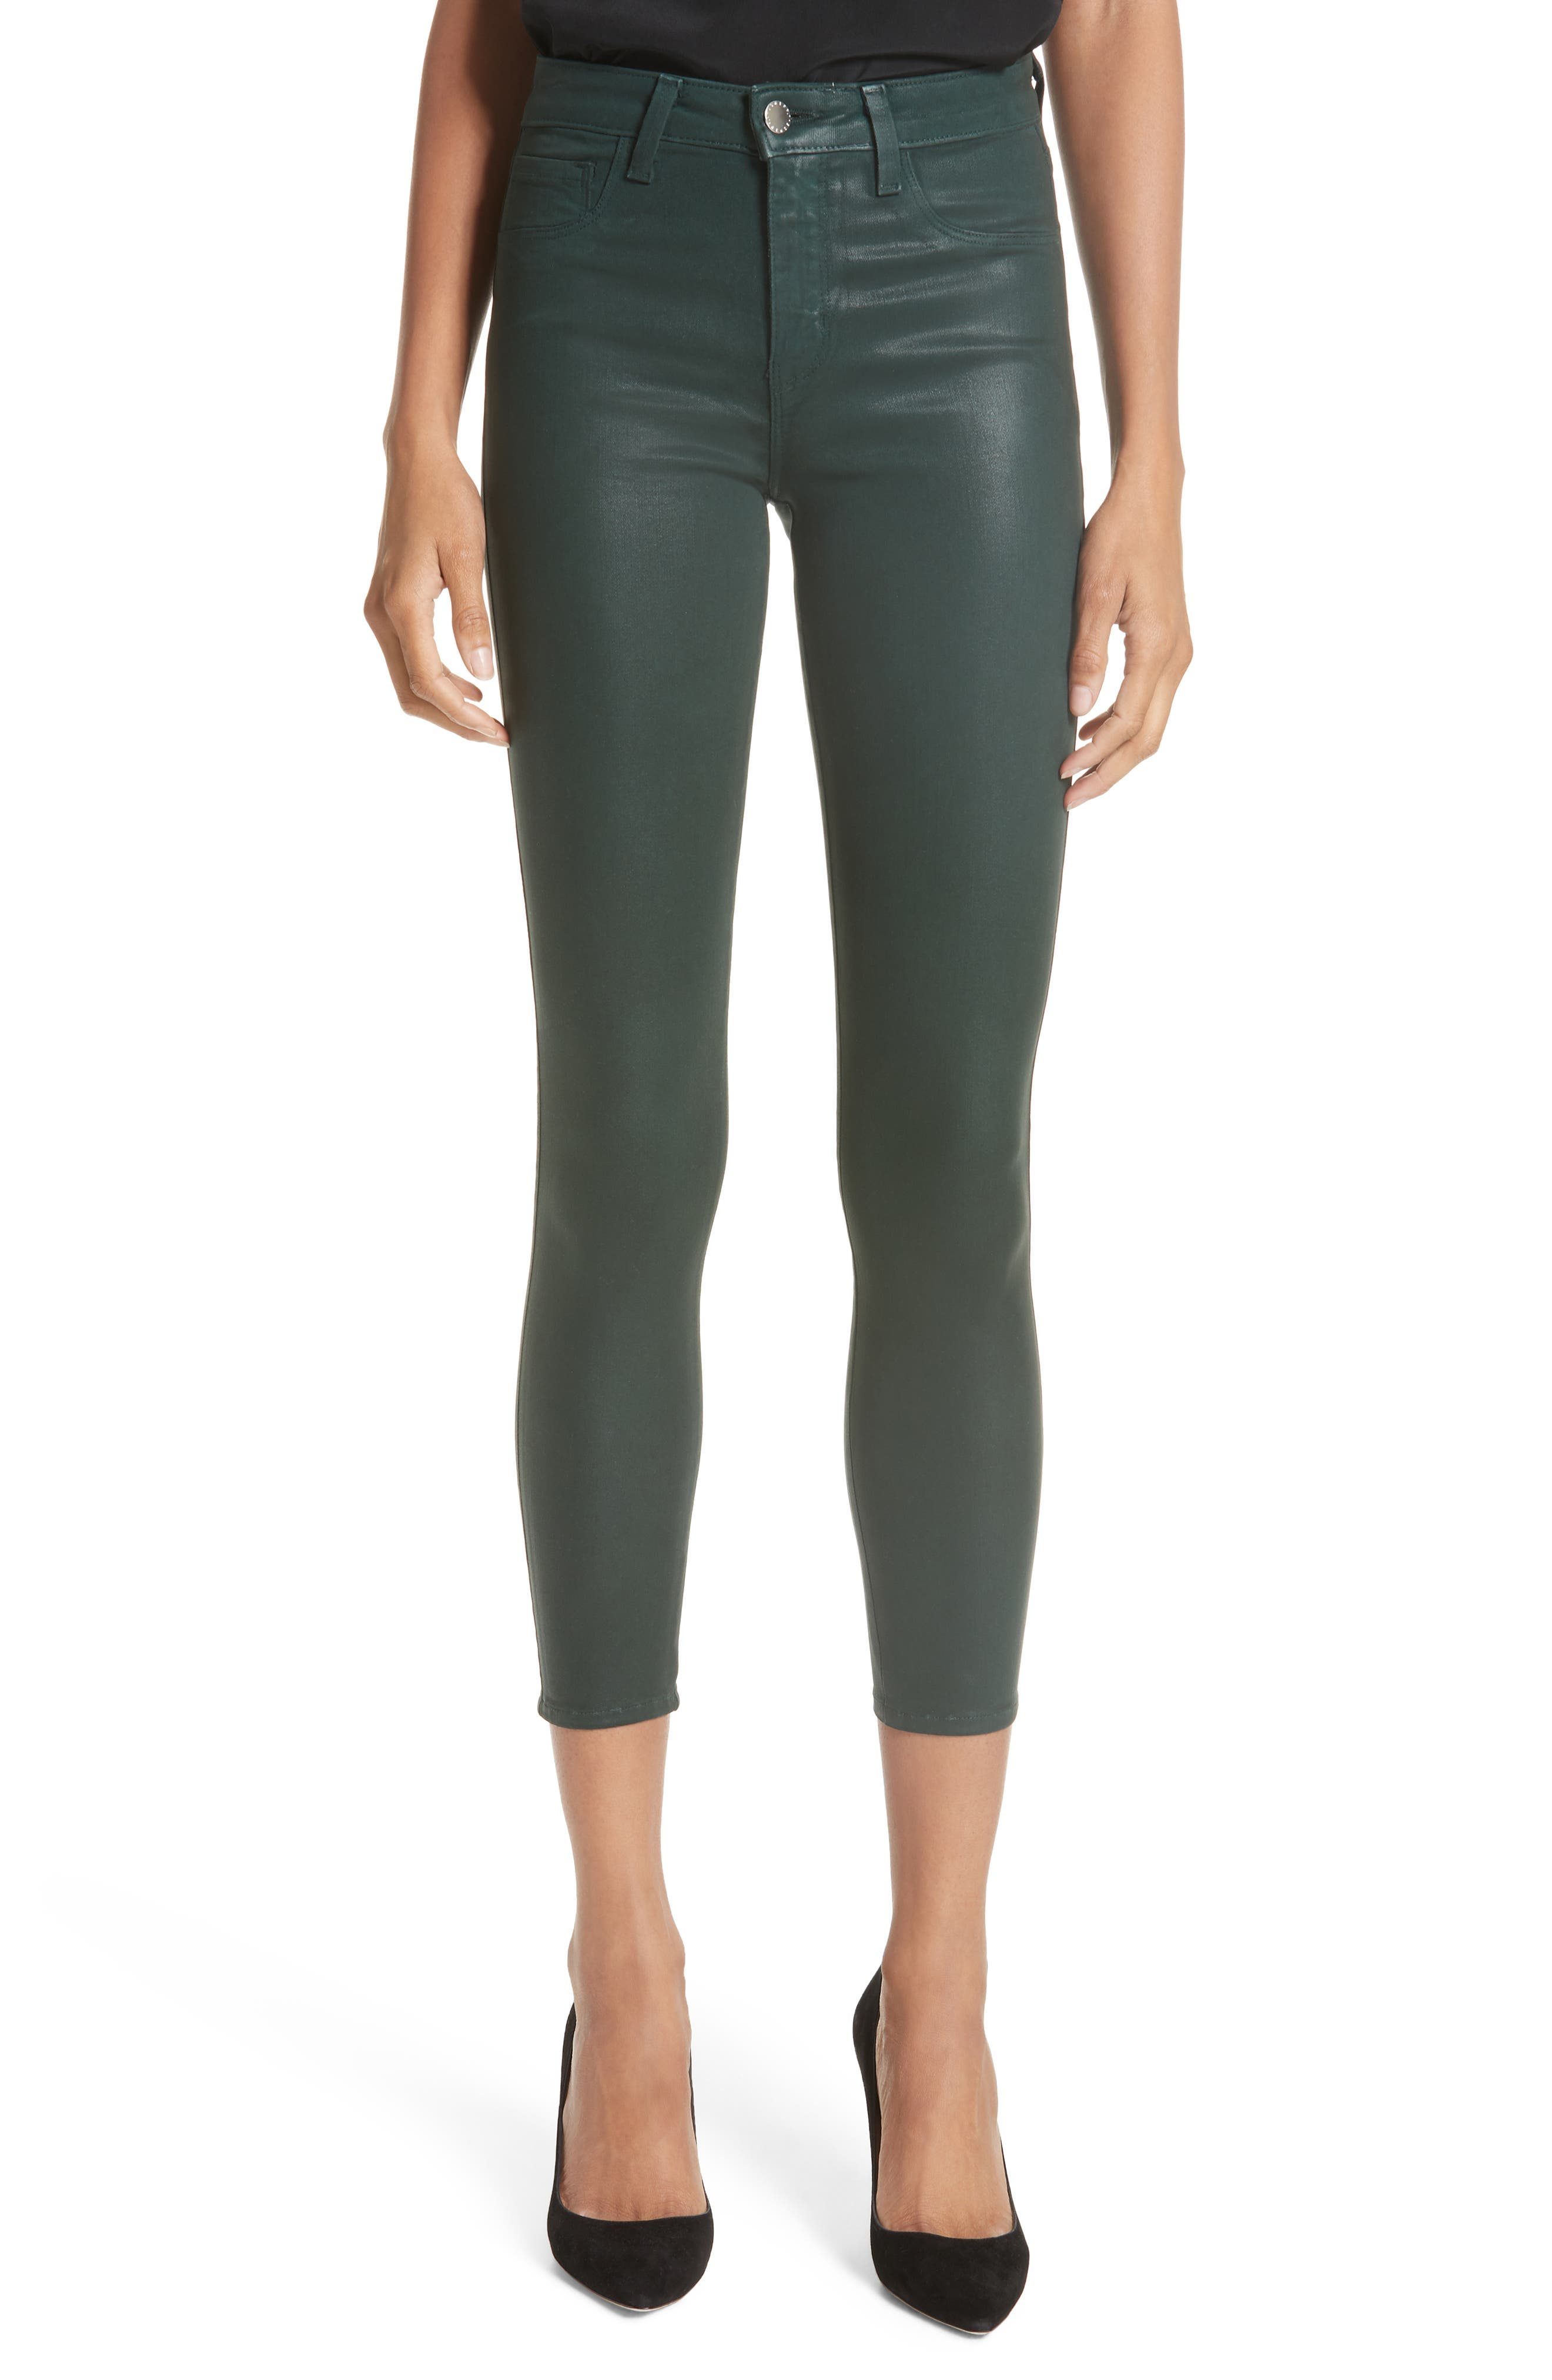 L'AGENCE,                             Margot Coated Crop Skinny Jeans,                             Main thumbnail 1, color,                             EVERGREEN COATED